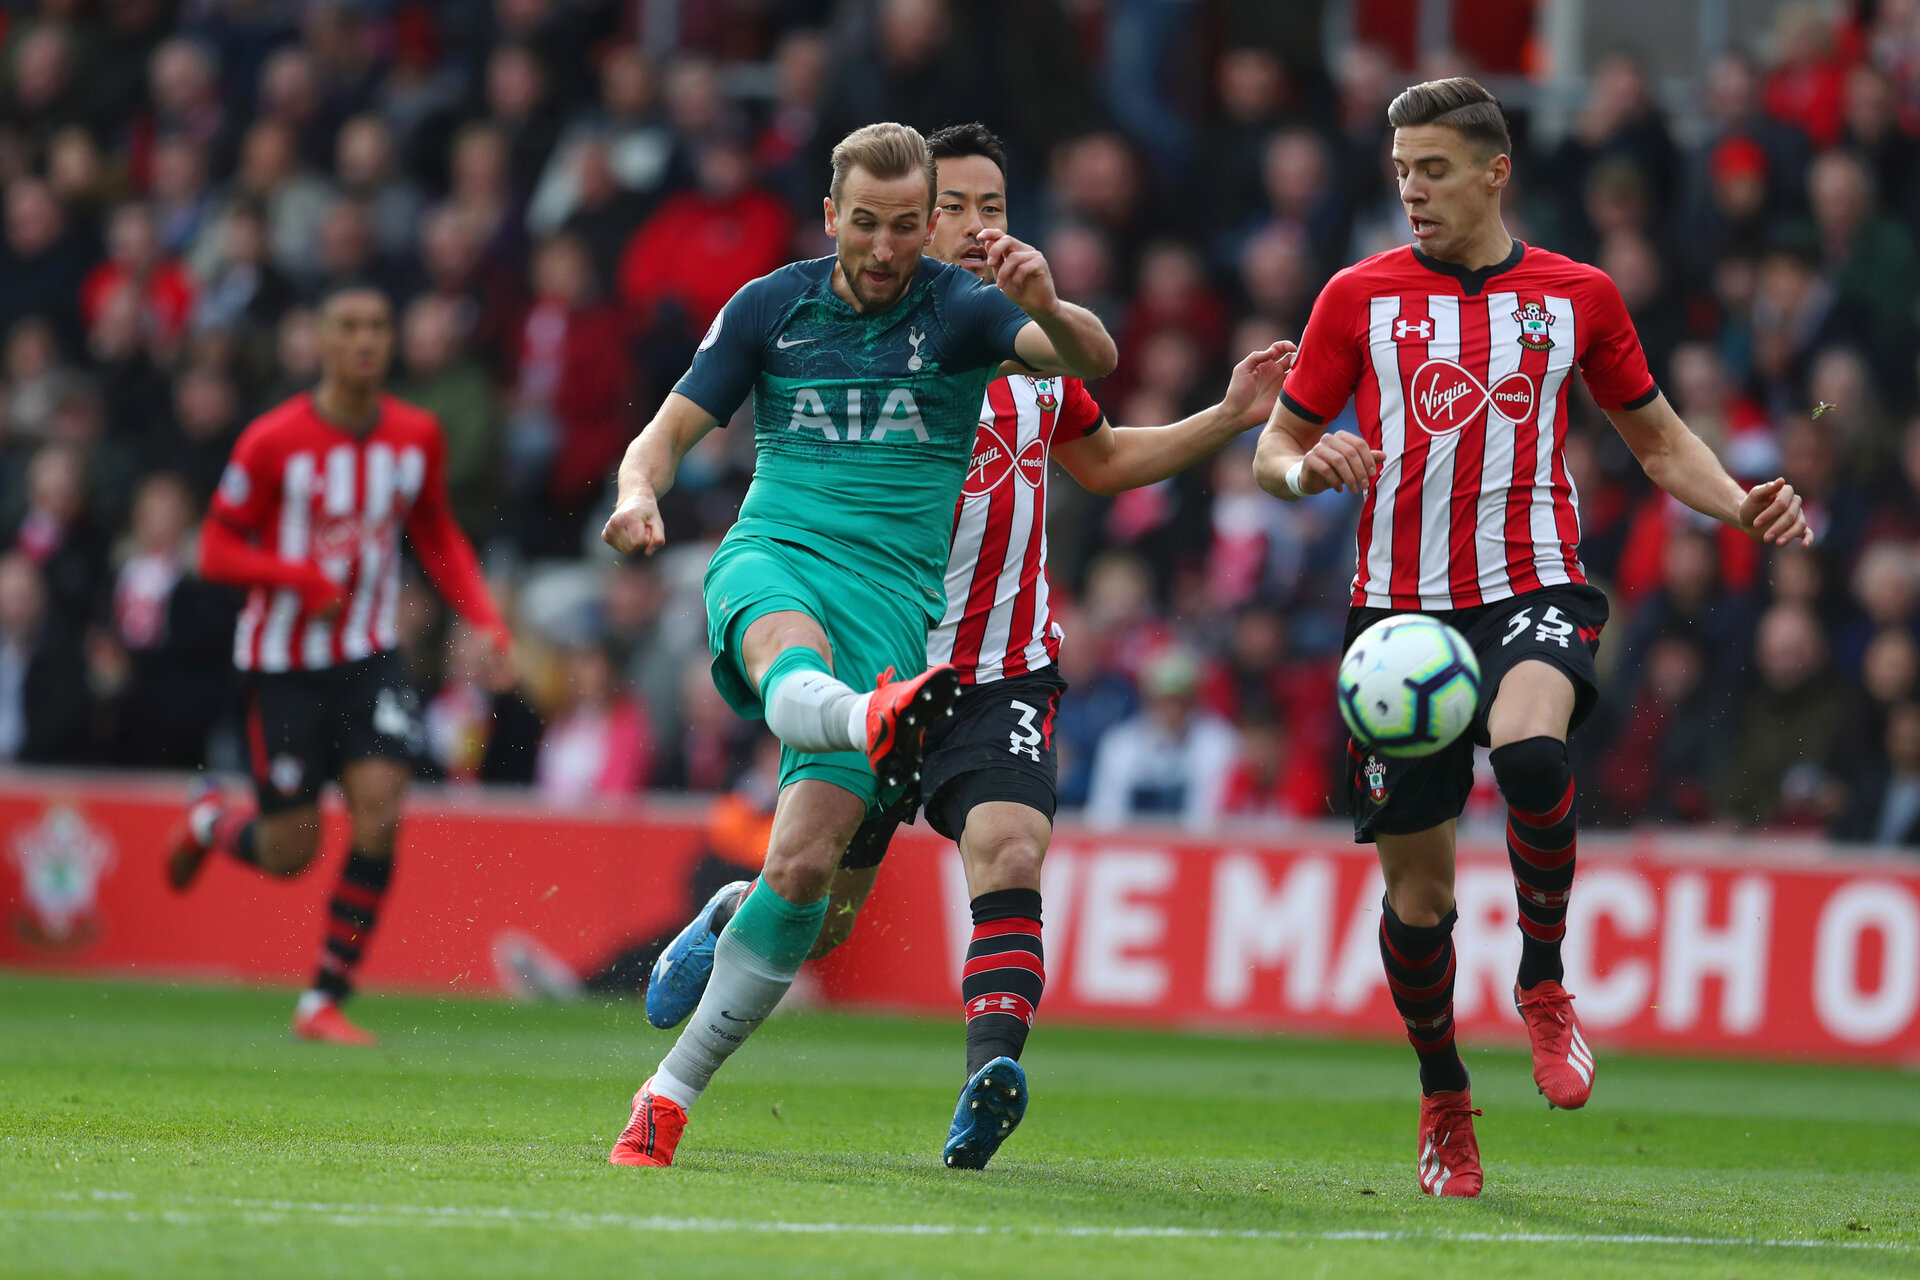 SOUTHAMPTON, ENGLAND - MARCH 09: Harry Kane of Tot tenham Hotspur shoots as he is is challenged by Jan Bednarek of Southampton during the Premier League match between Southampton FC and Tottenham Hotspur at St Mary's Stadium on March 09, 2019 in Southampton, United Kingdom. (Photo by Catherine Ivill/Getty Images)